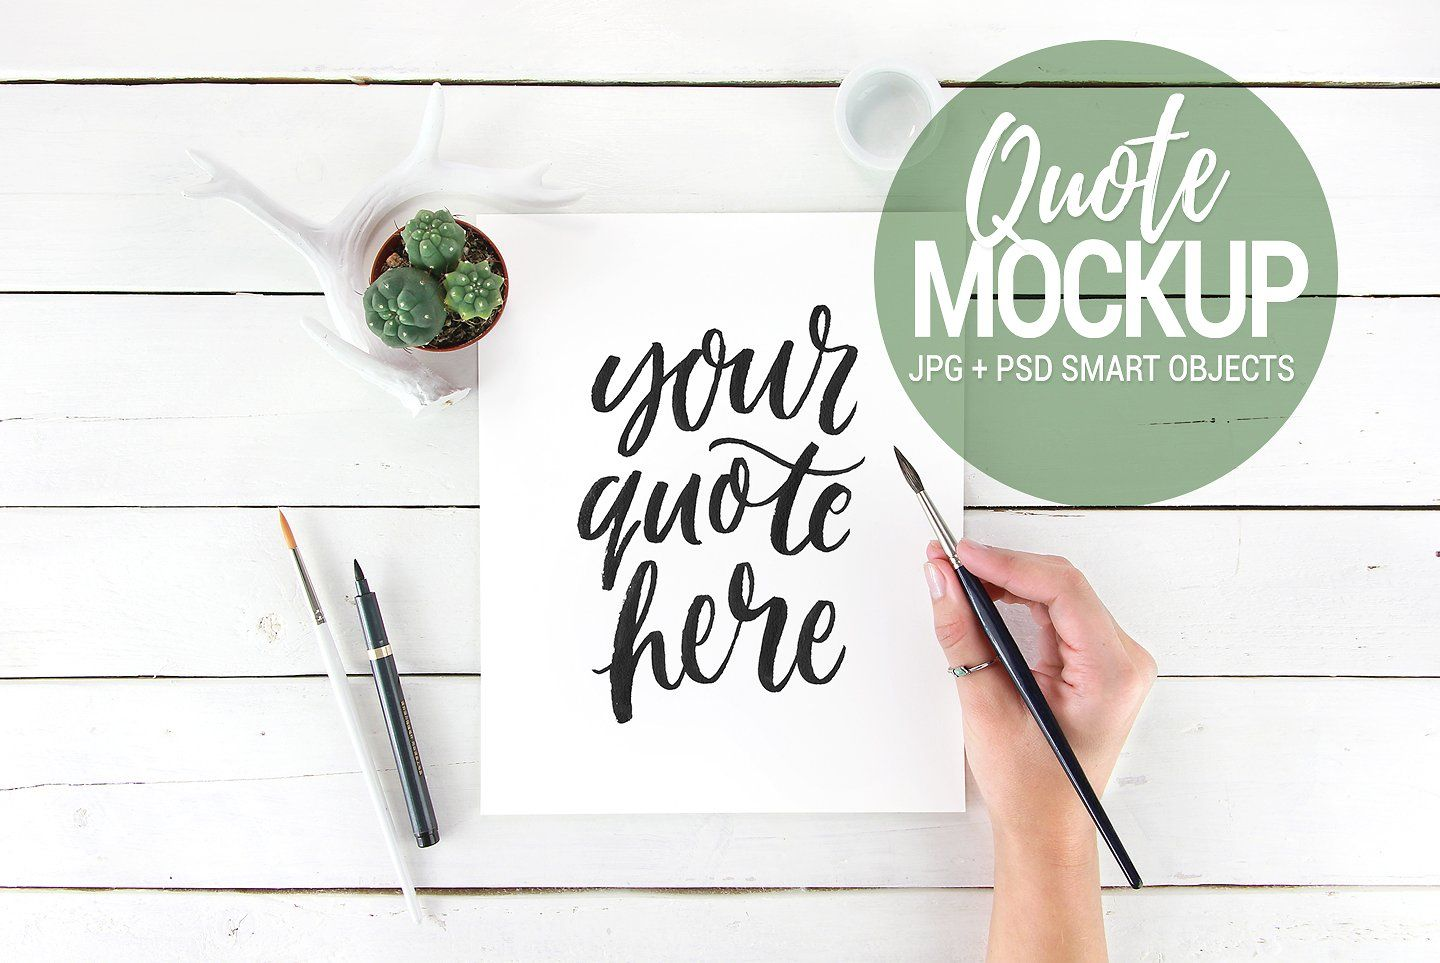 Quote Mockup Flatlay Styled Stock